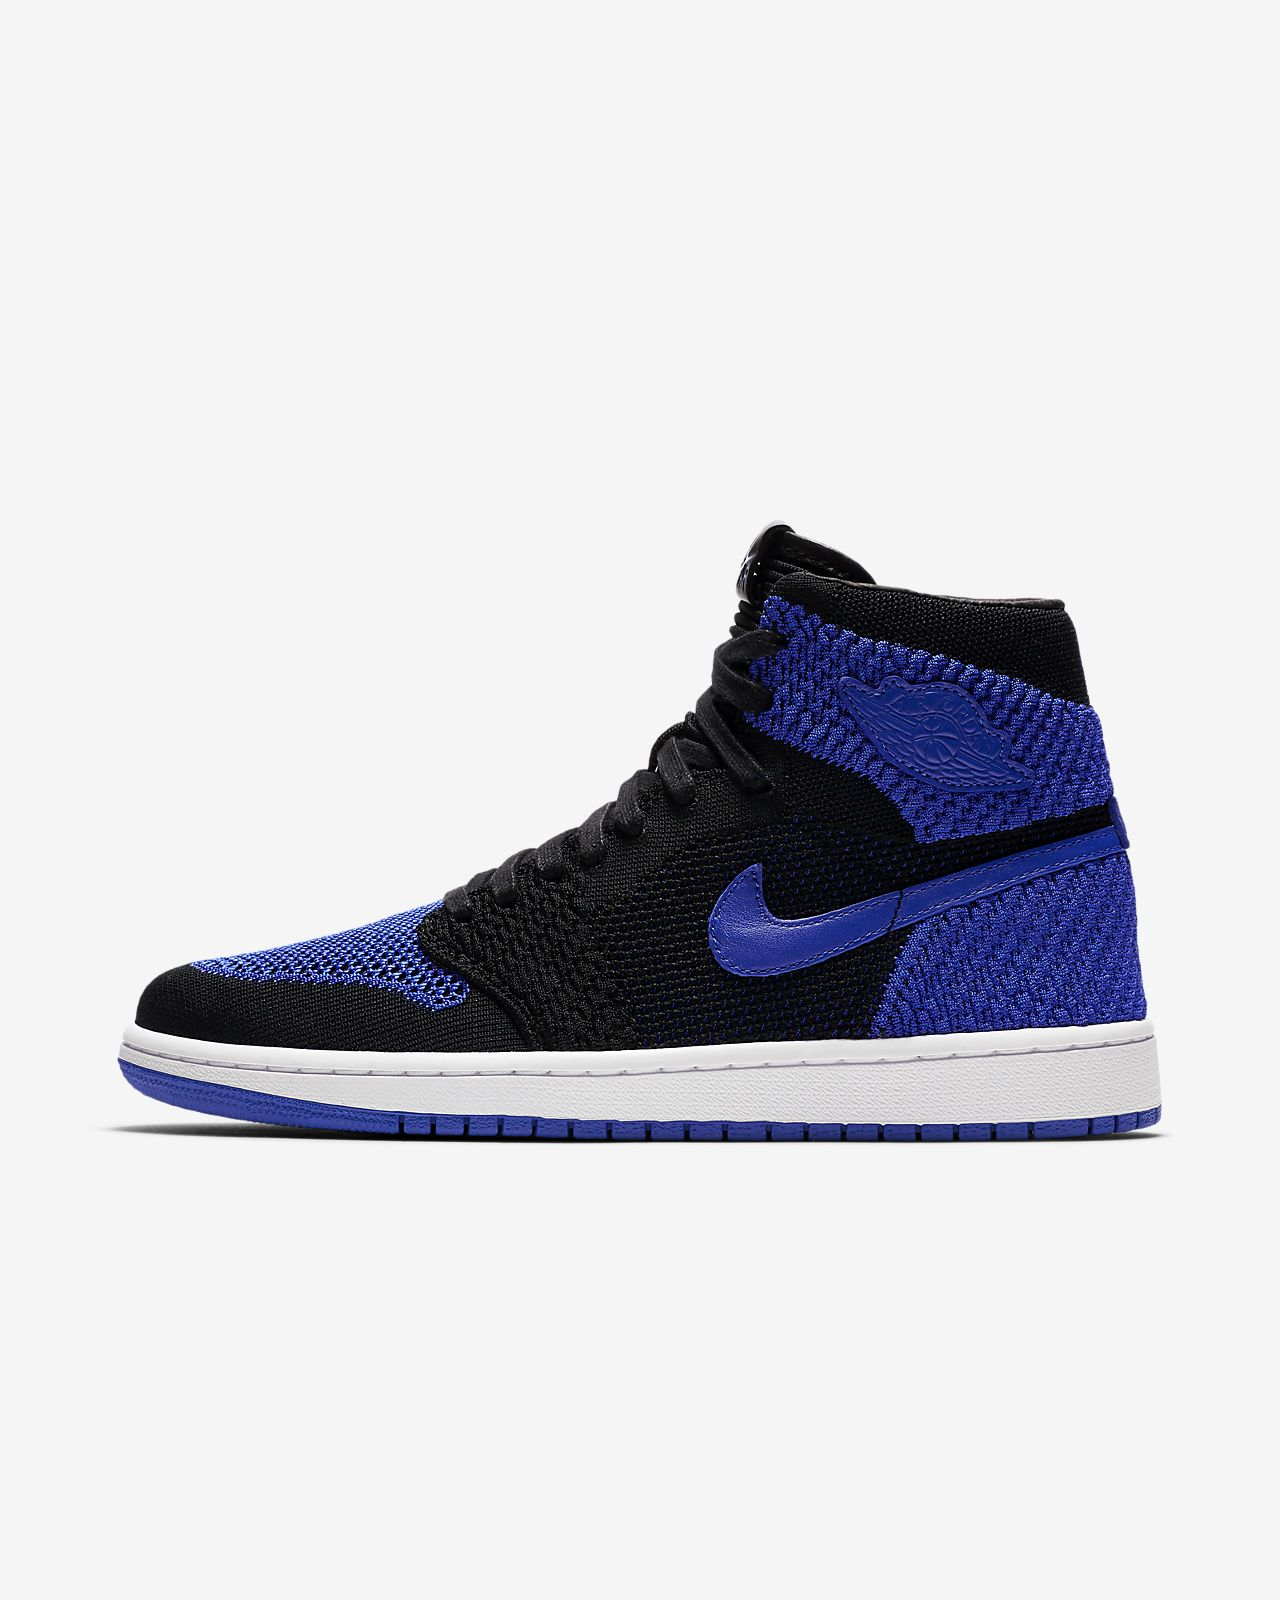 new product 6c218 3a158 ... Calzado para hombre Air Jordan 1 Retro High Flyknit